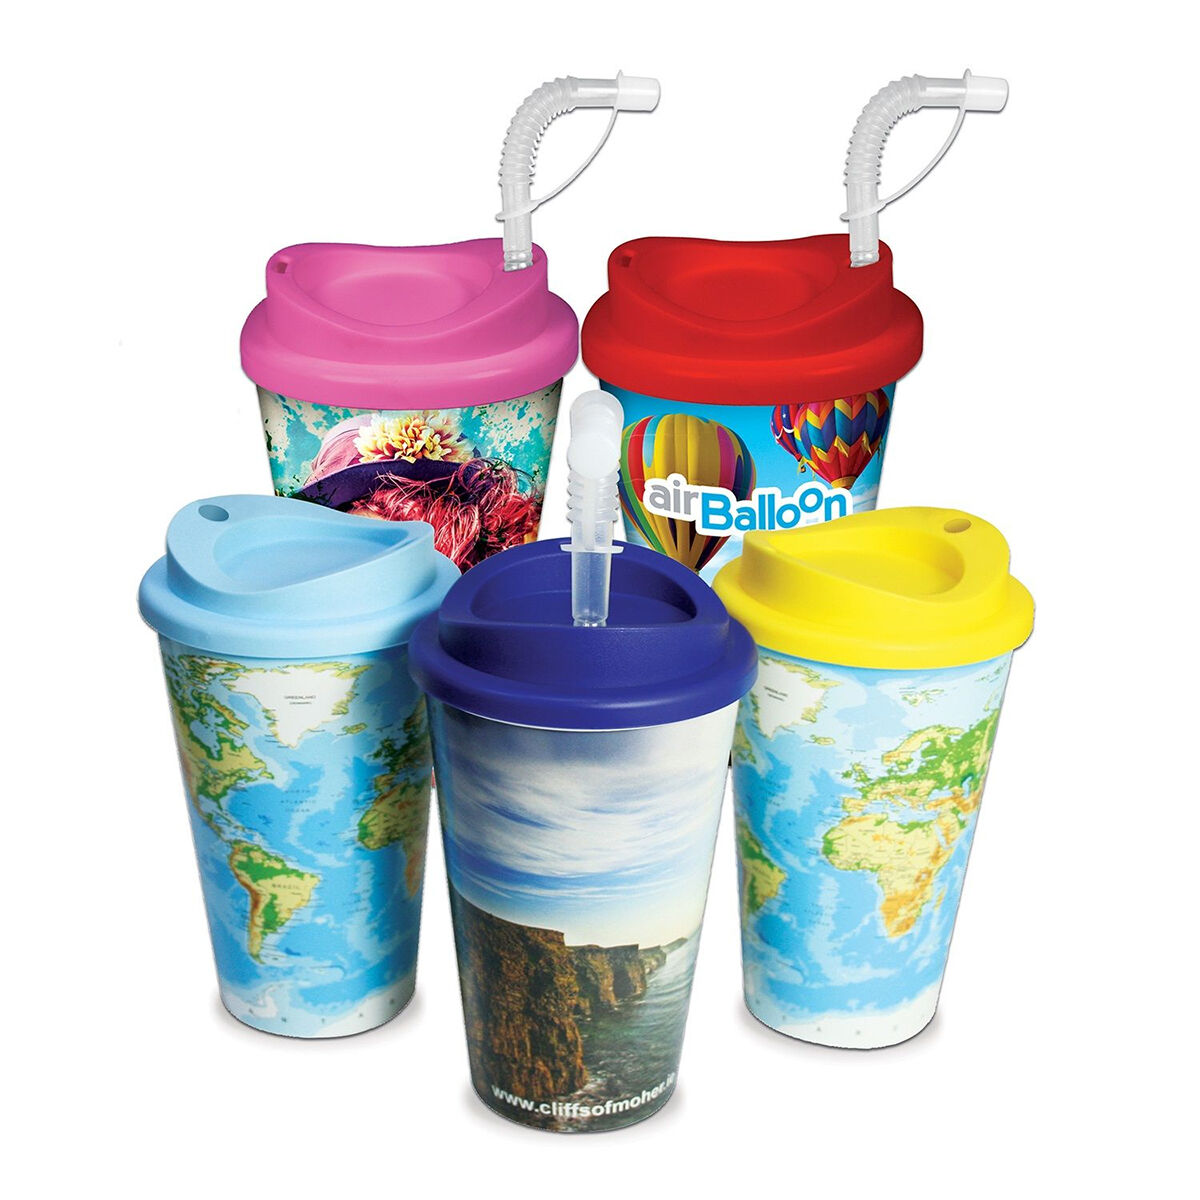 Universal Takeaway Cup with a full colour print